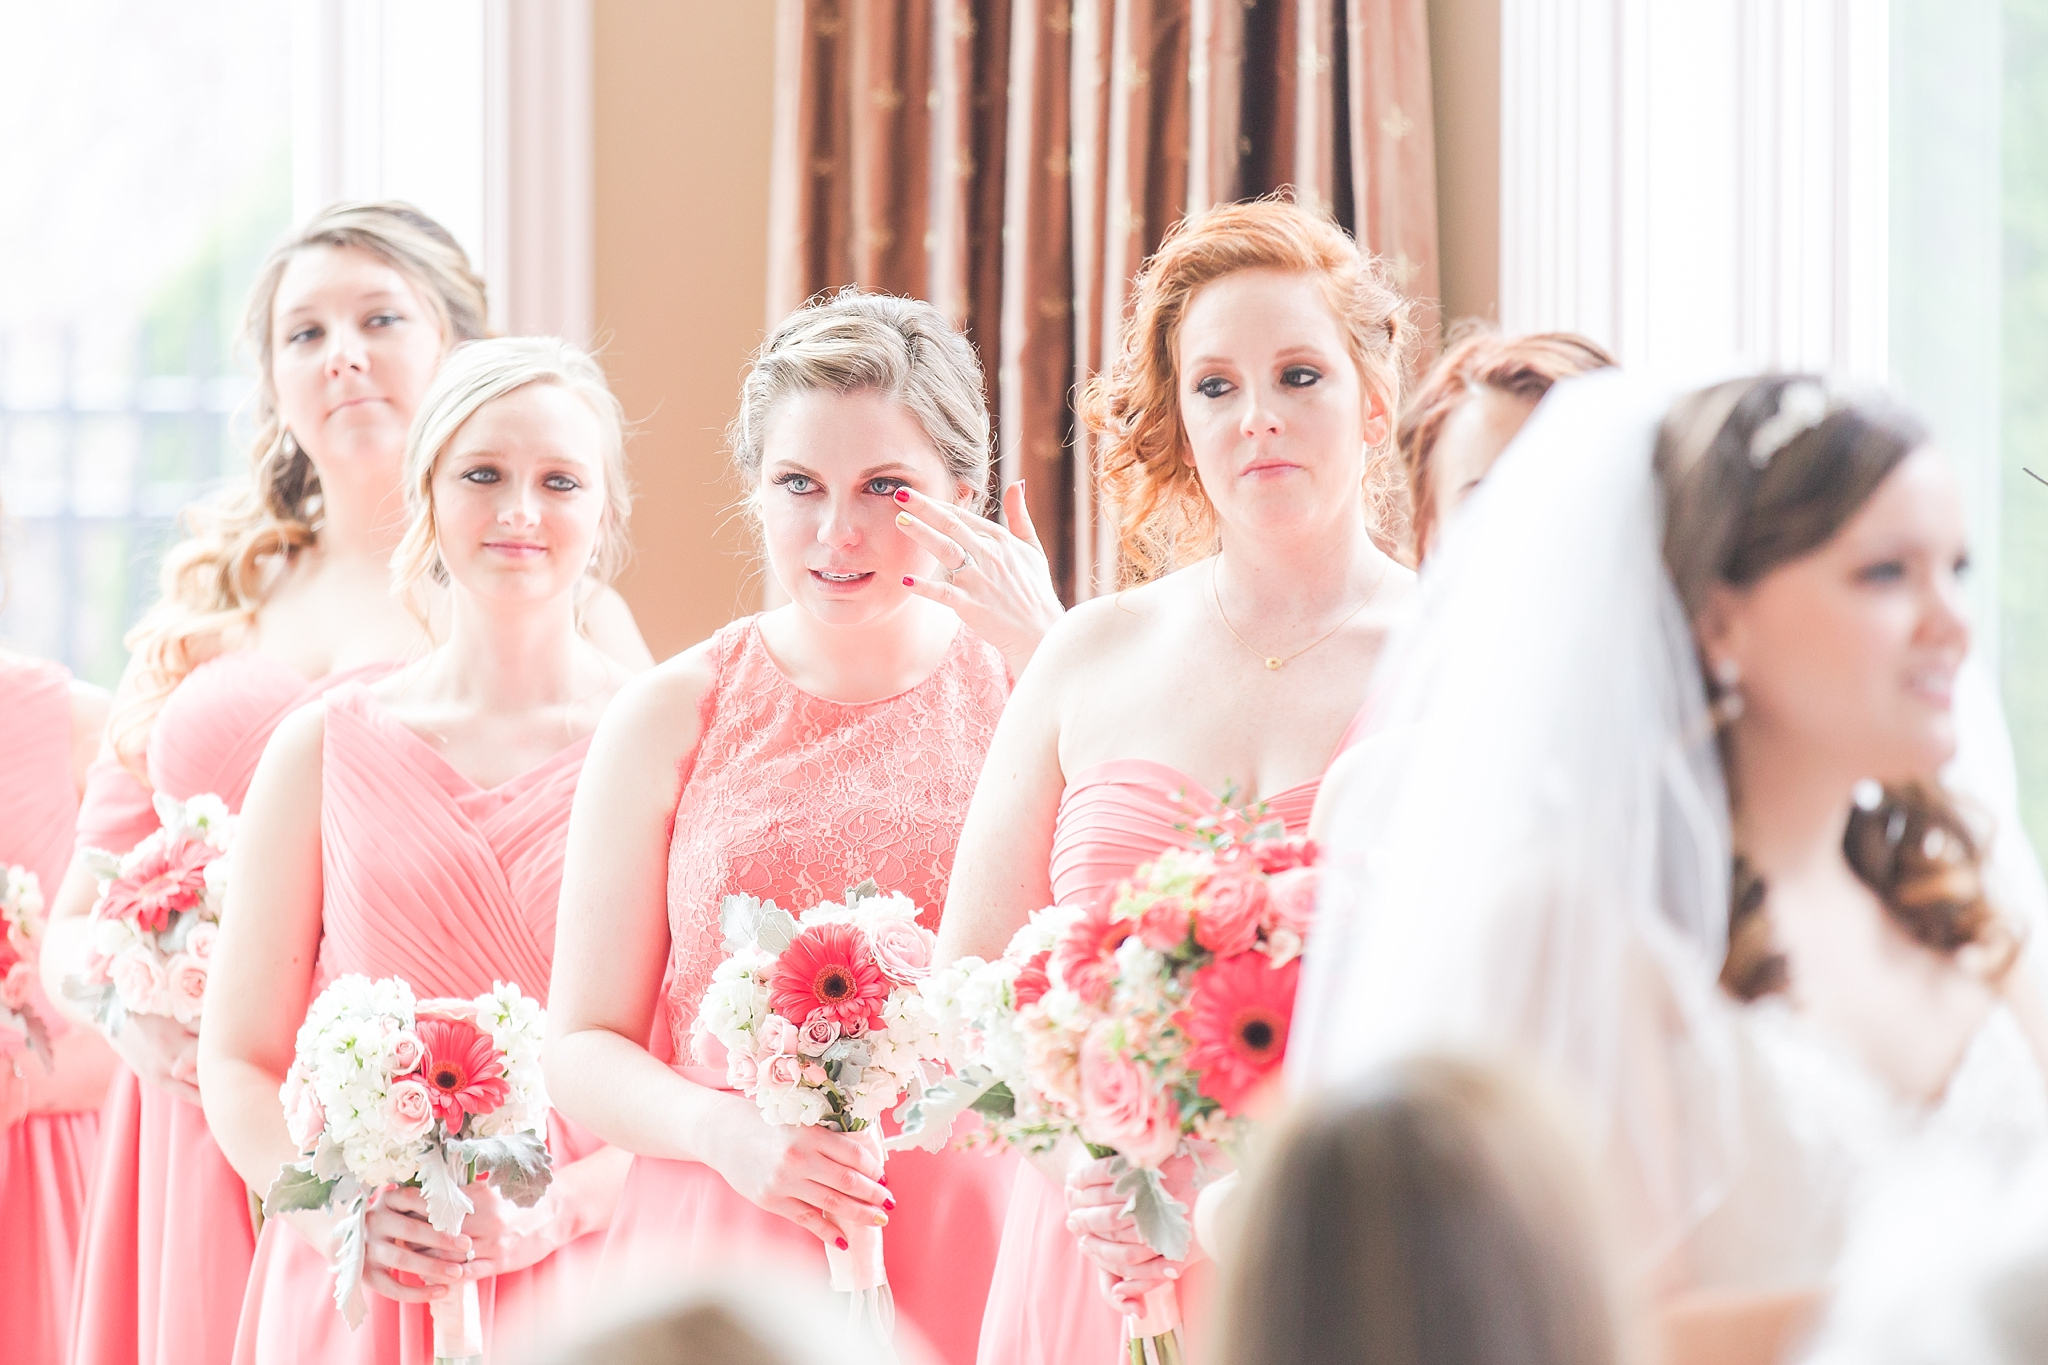 romantic-artful-candid-wedding-photos-in-st-clair-shores-at-the-white-house-wedding-chapel-by-courtney-carolyn-photography_0030.jpg